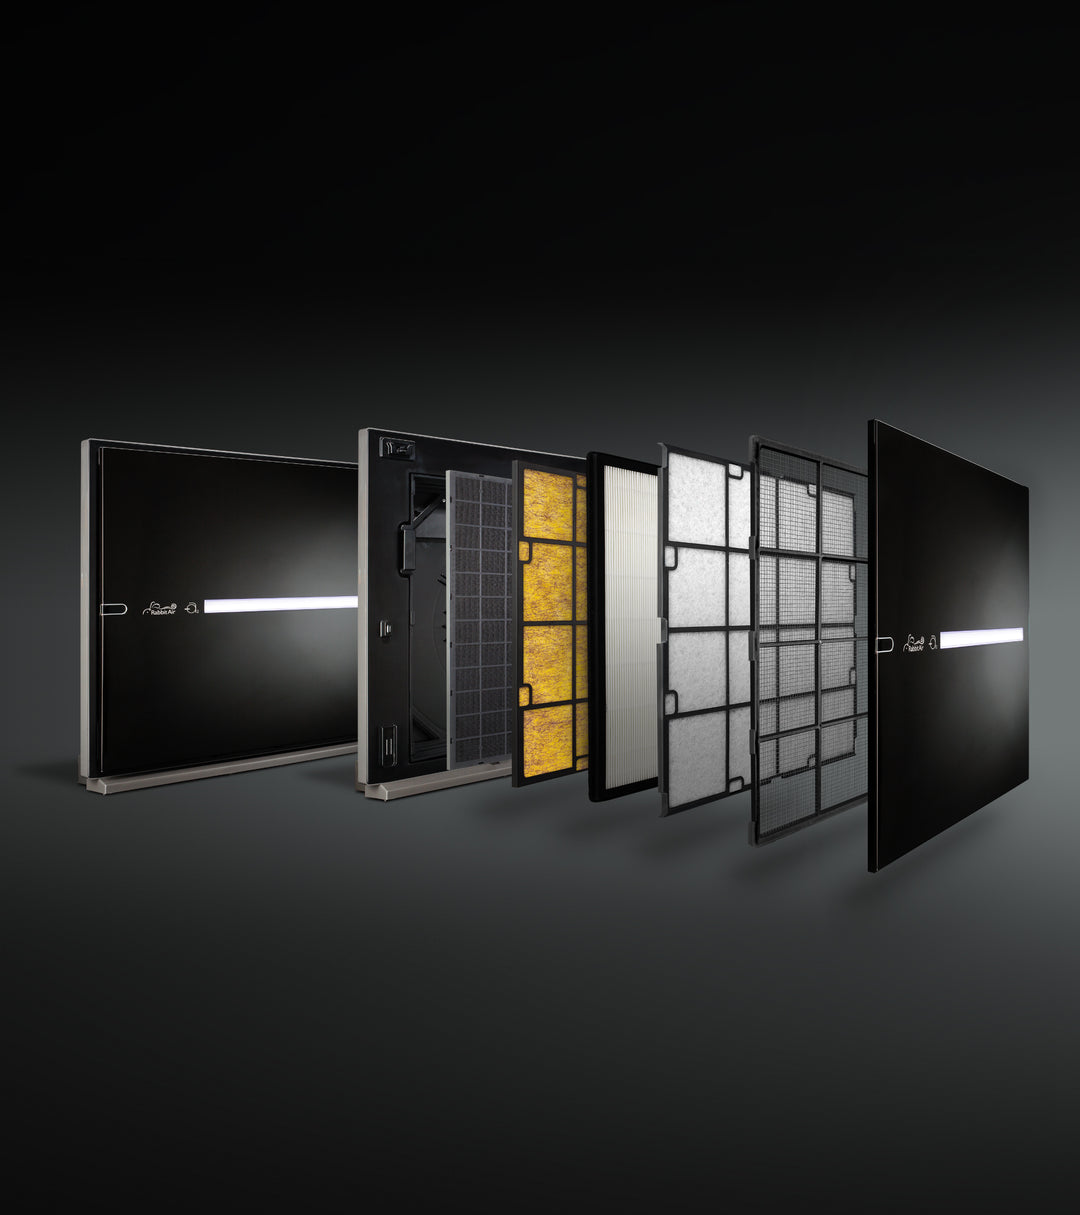 Exploded view of MinusA2, showcasing the front panel and its five filters